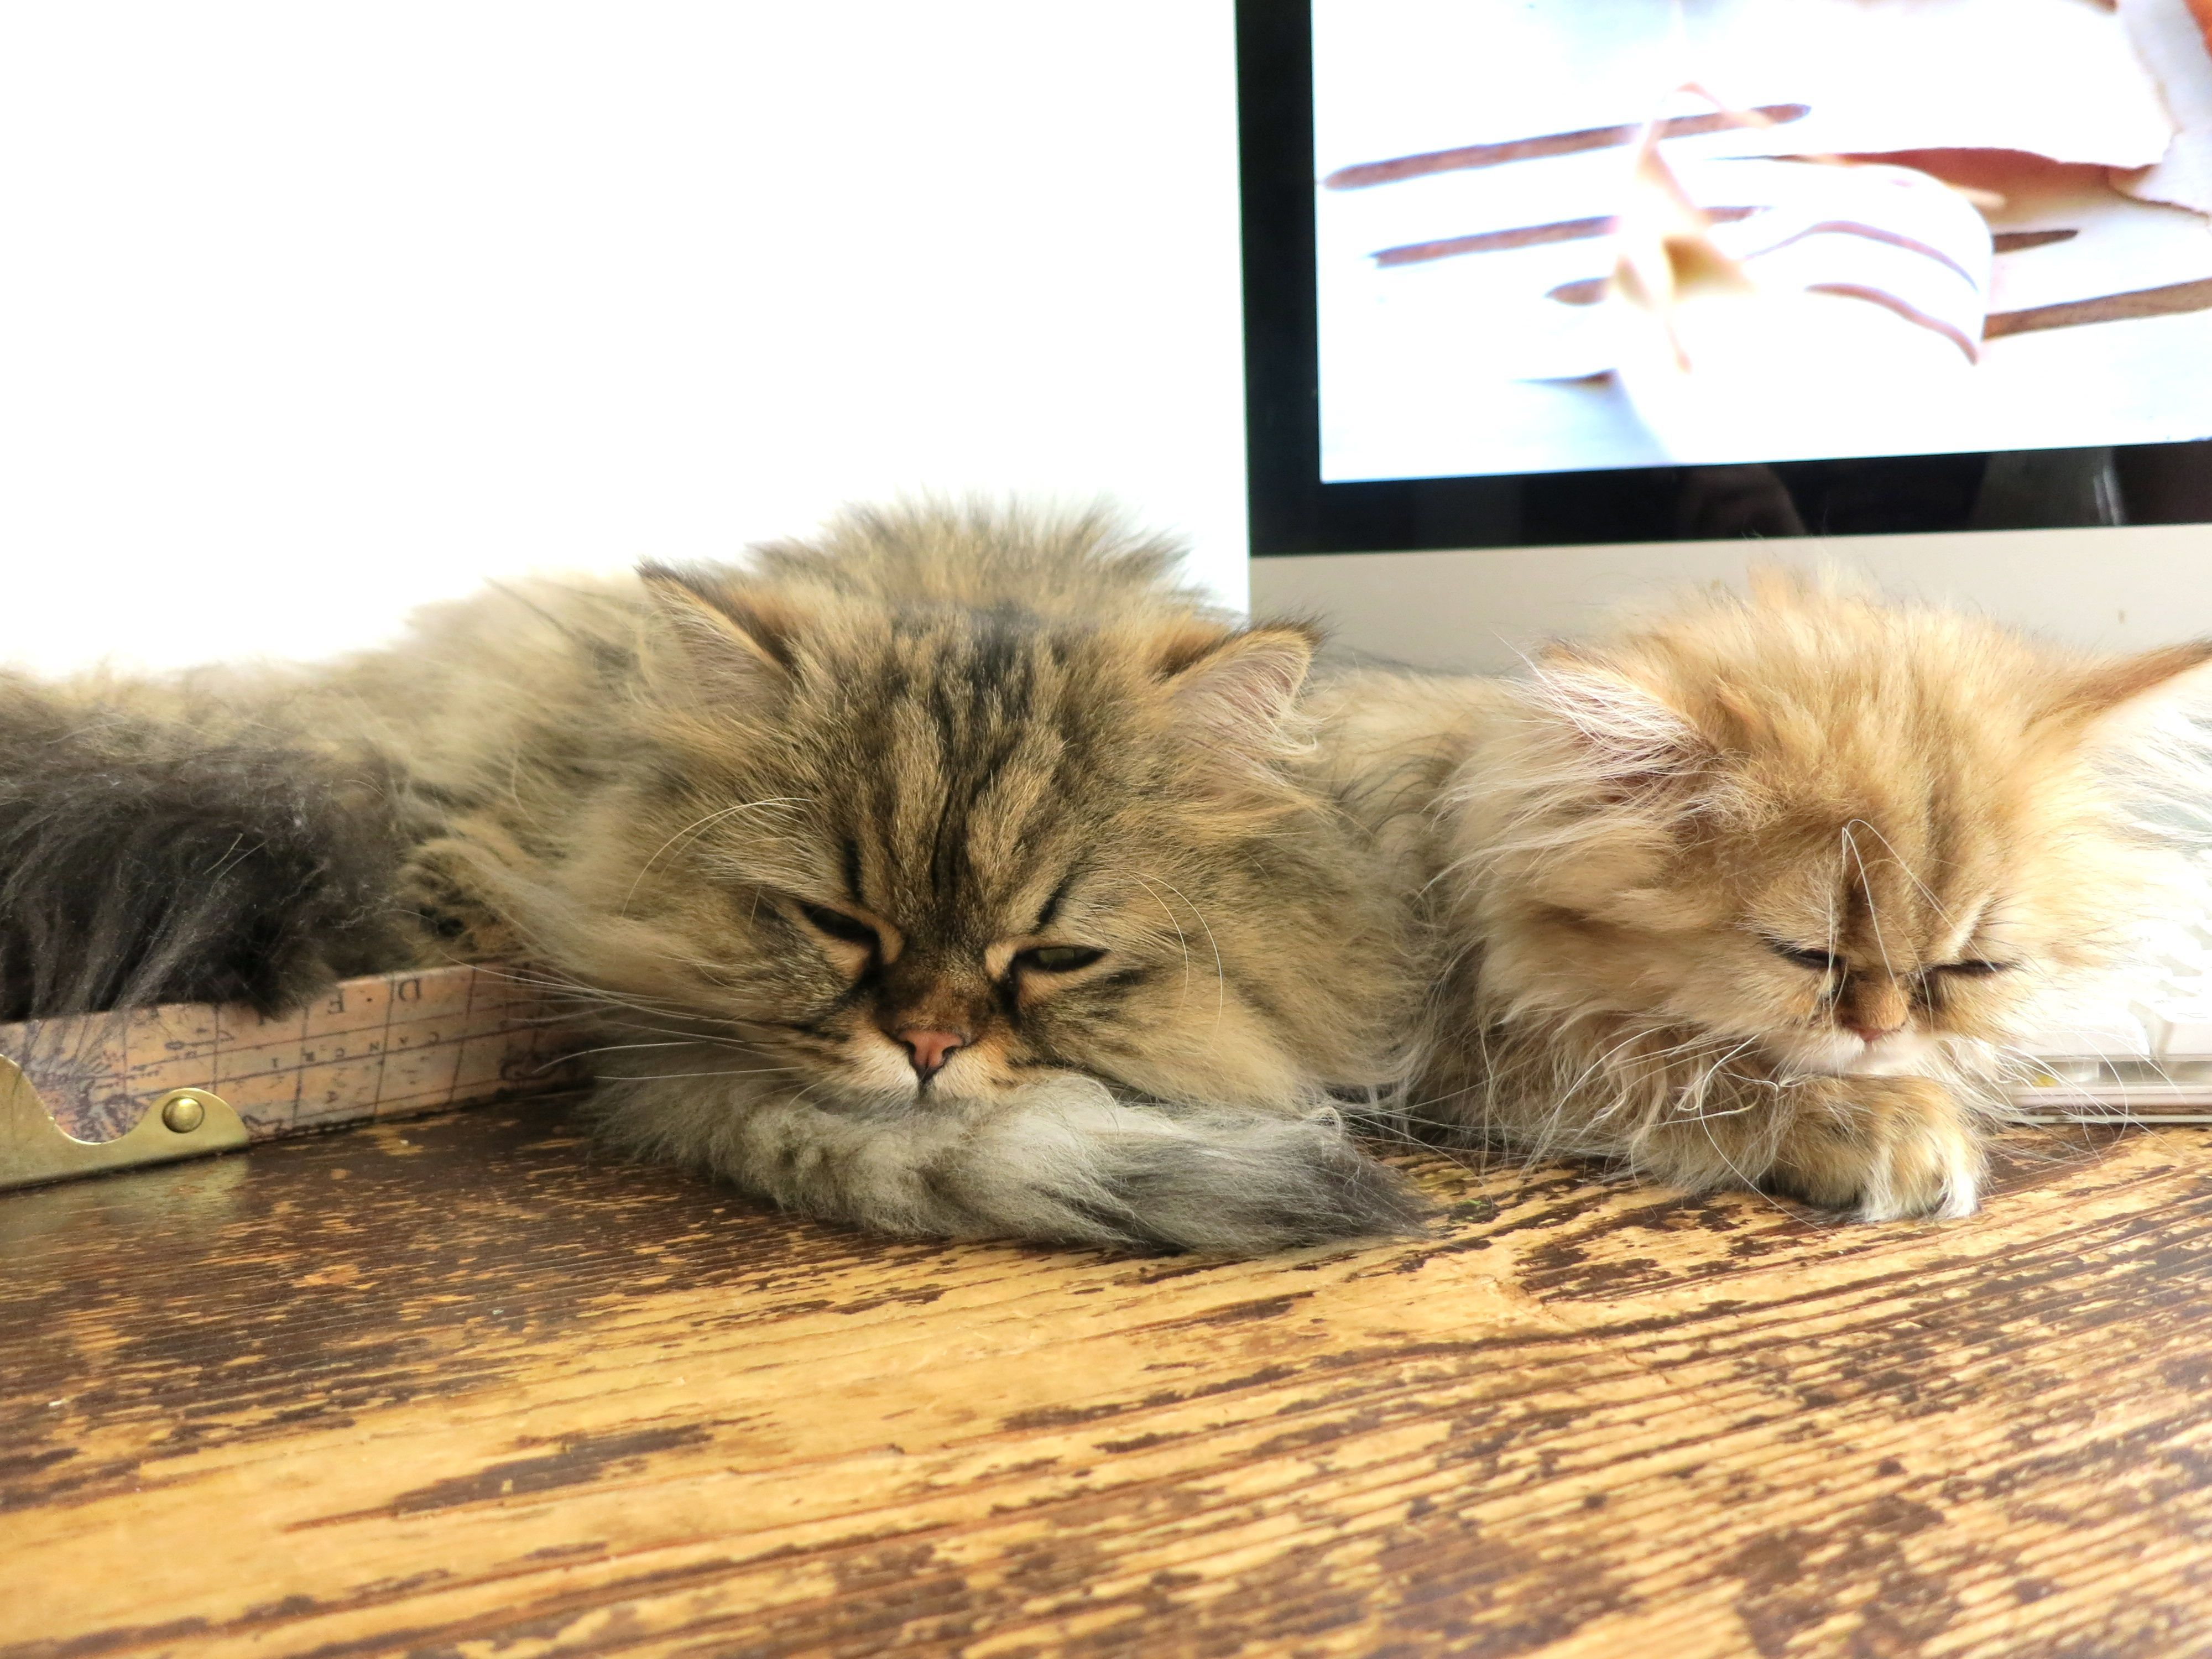 Best Friends Two Persian Cats Click To Read About The First 3 Weeks Of Introducing A New Kitten To A Resident Cat Cat Training Cats Kitten Meowing